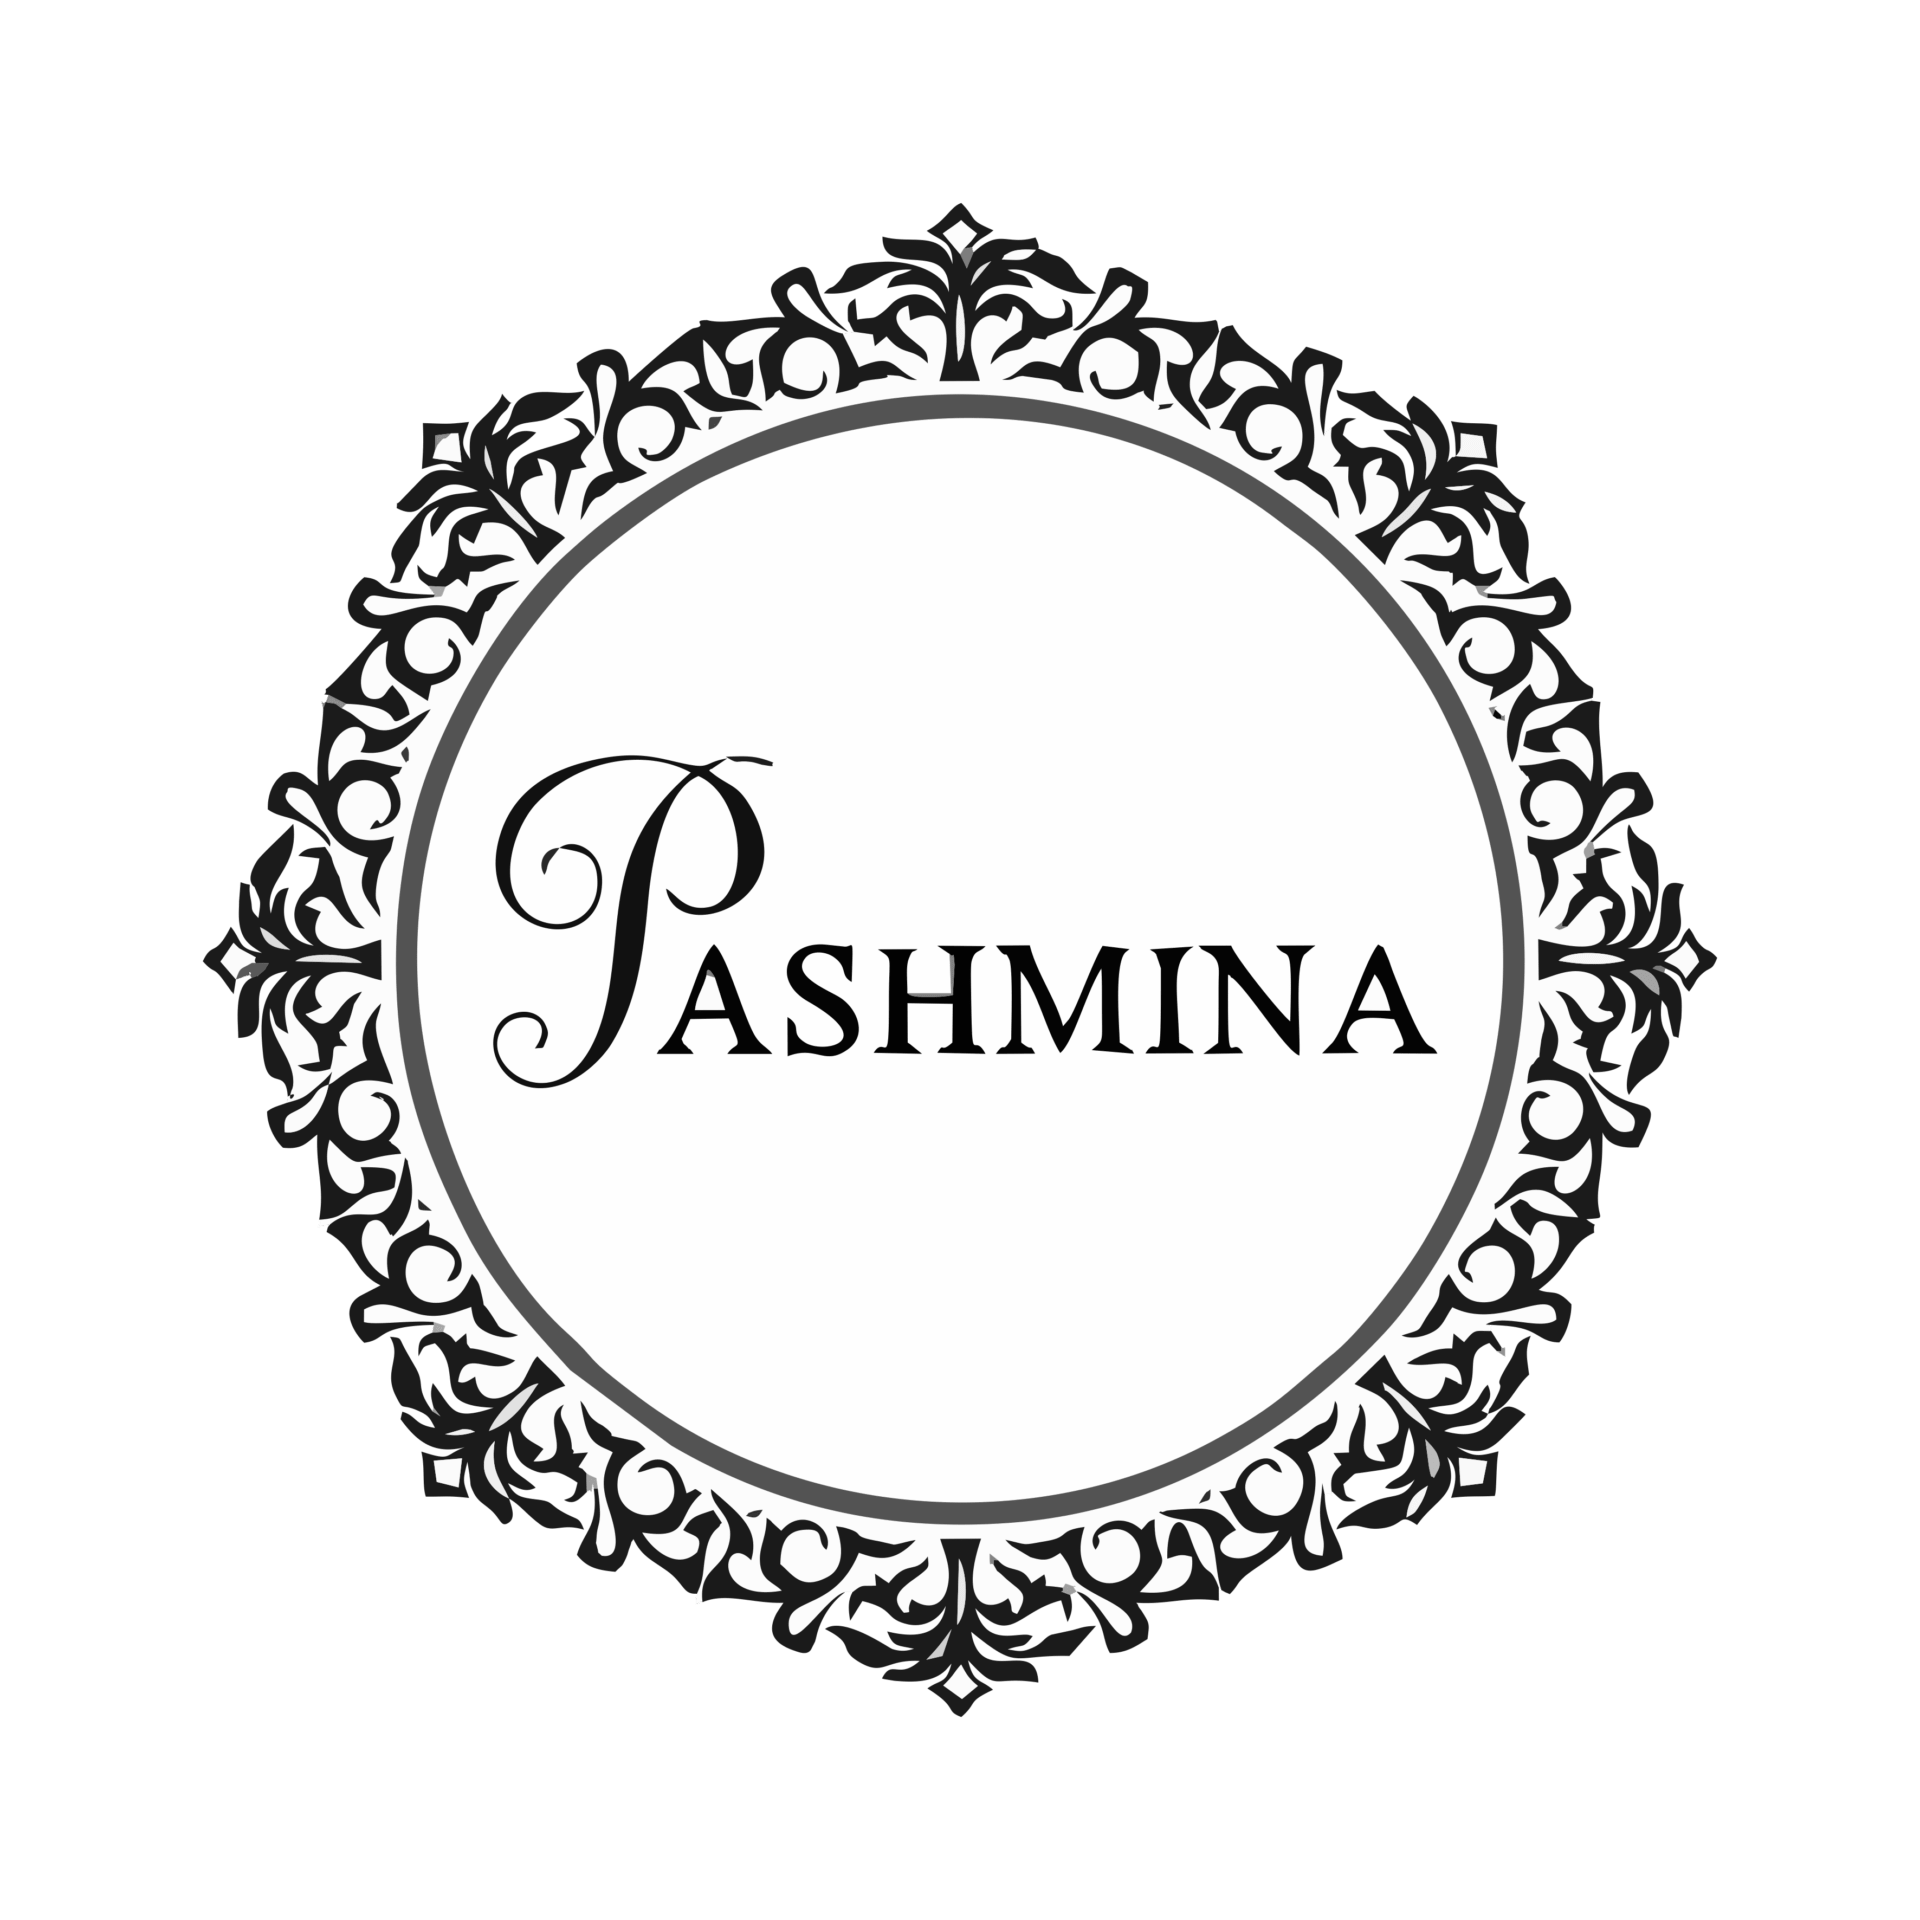 pashmina : Brand Short Description Type Here.